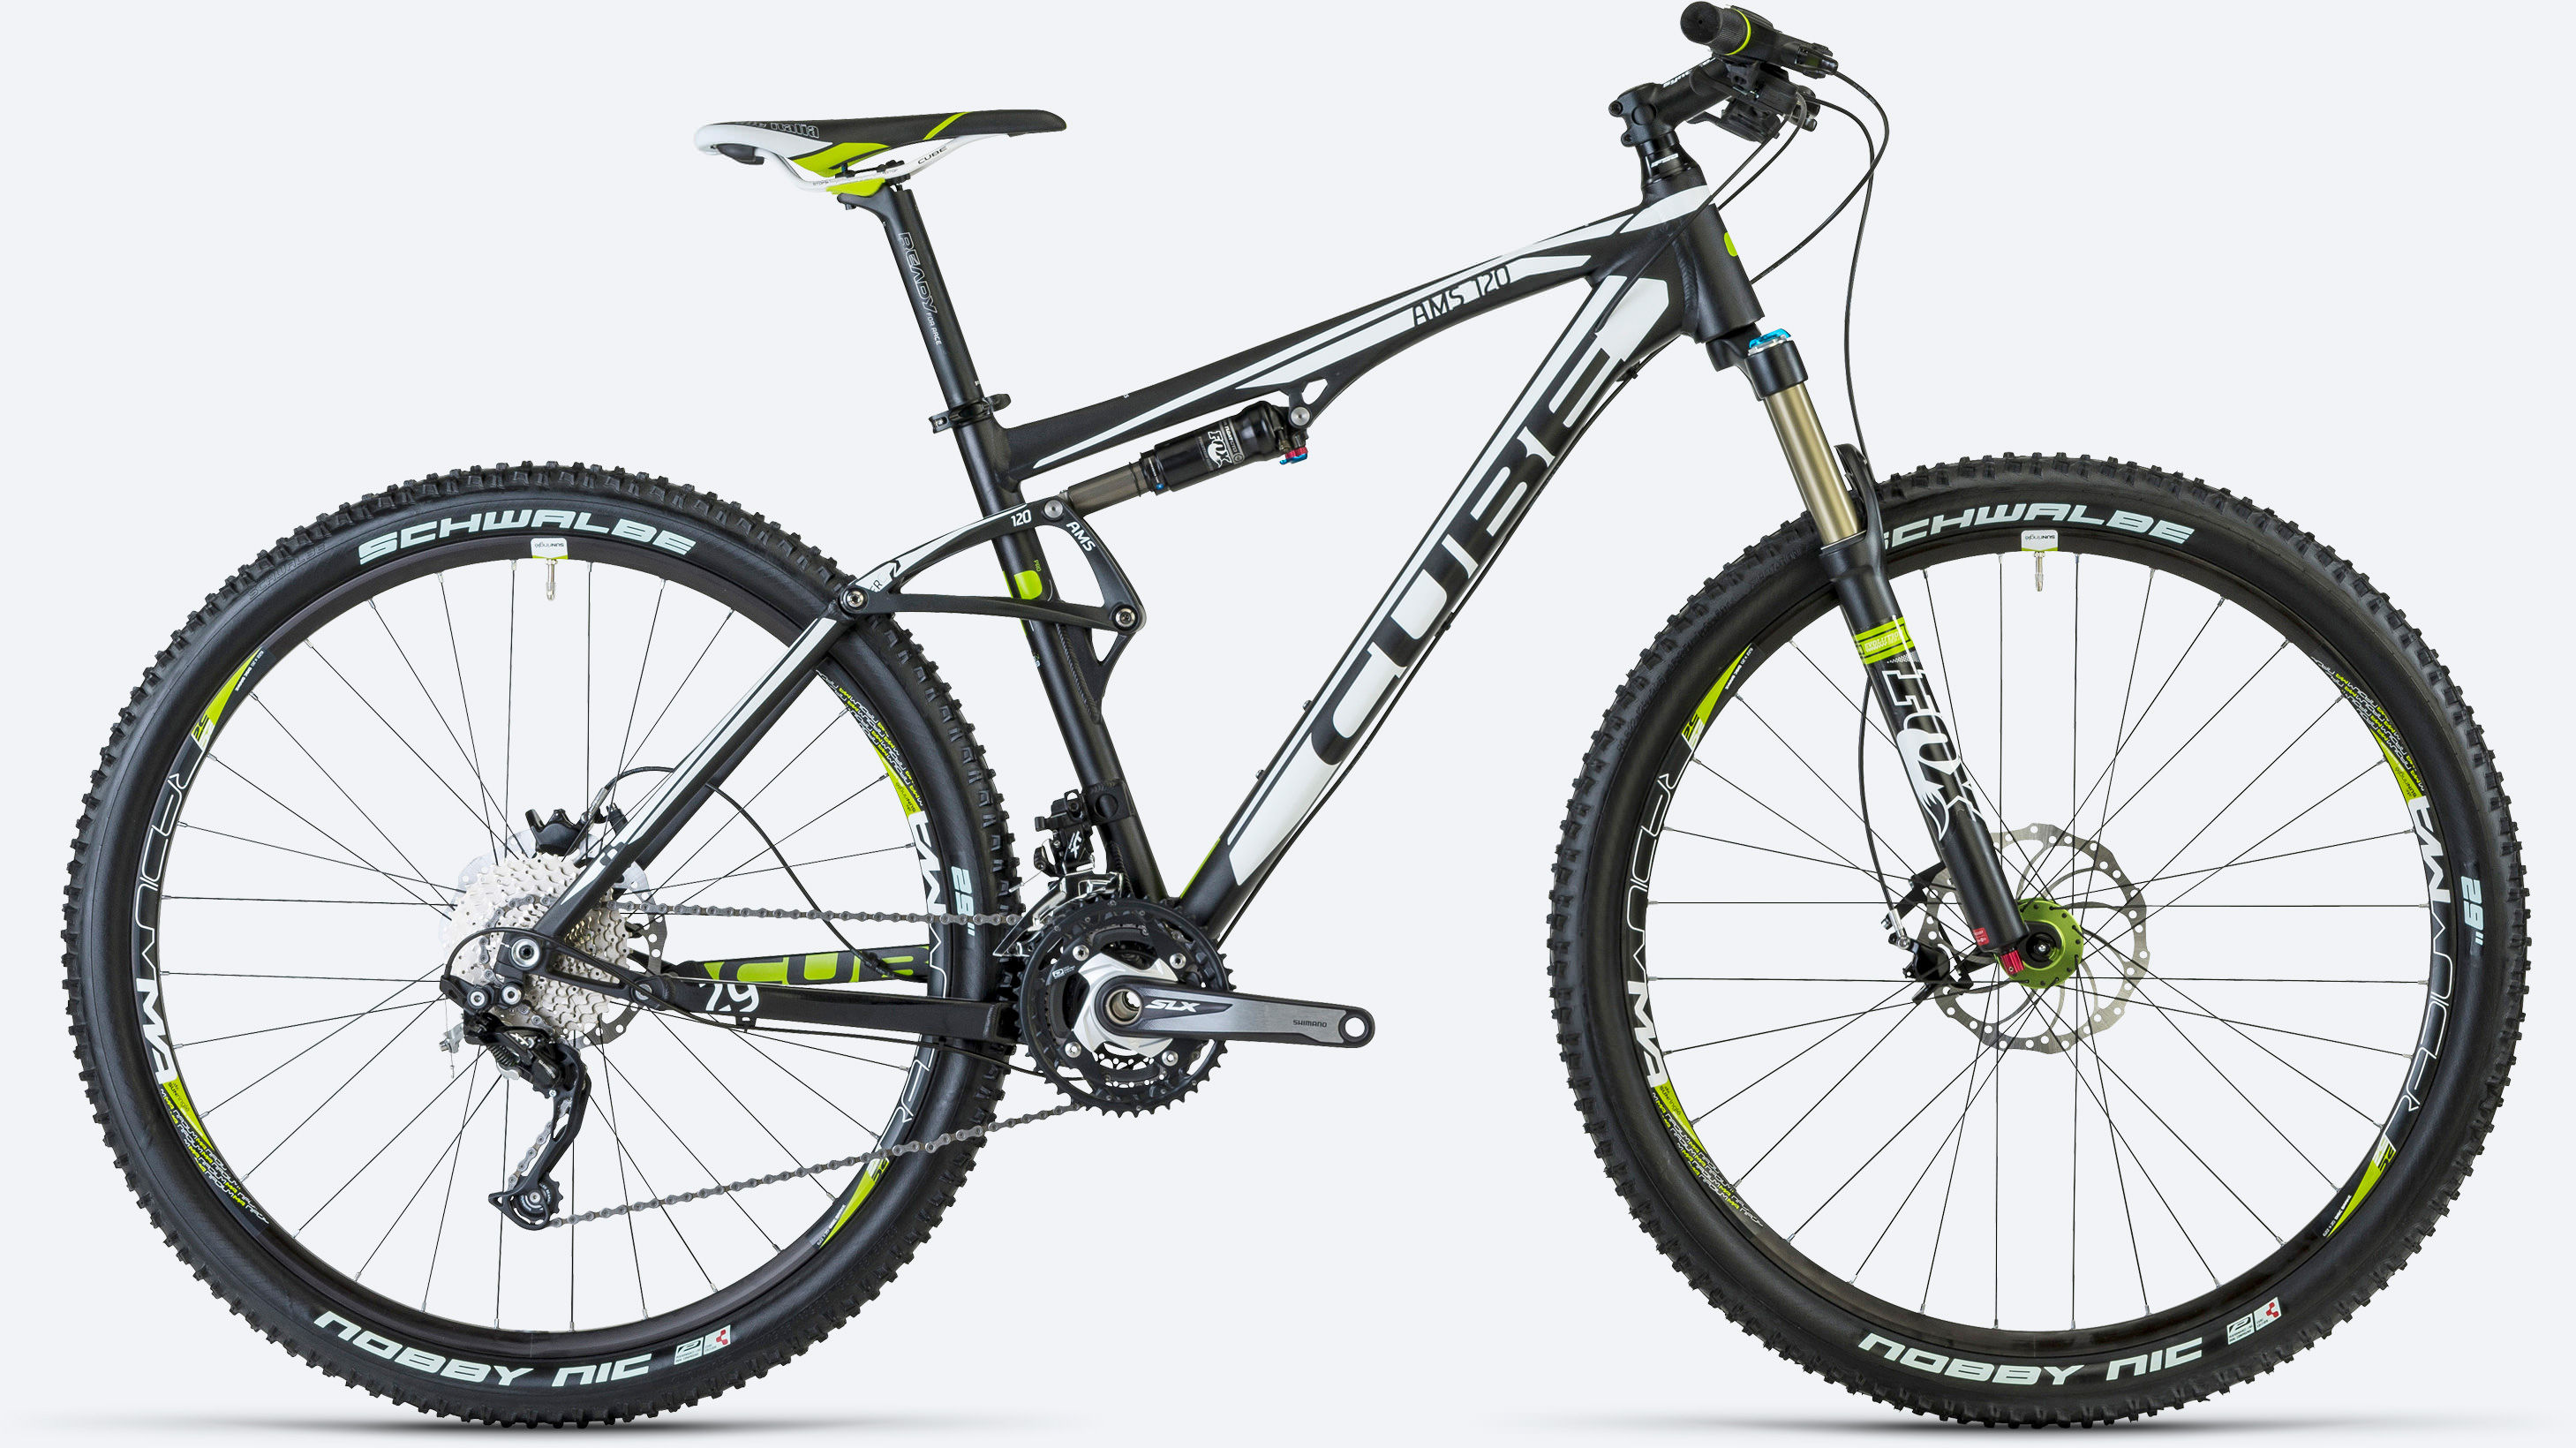 Populære Cube AMS 120 Pro 29 2013 review - The Bike List TZ-02